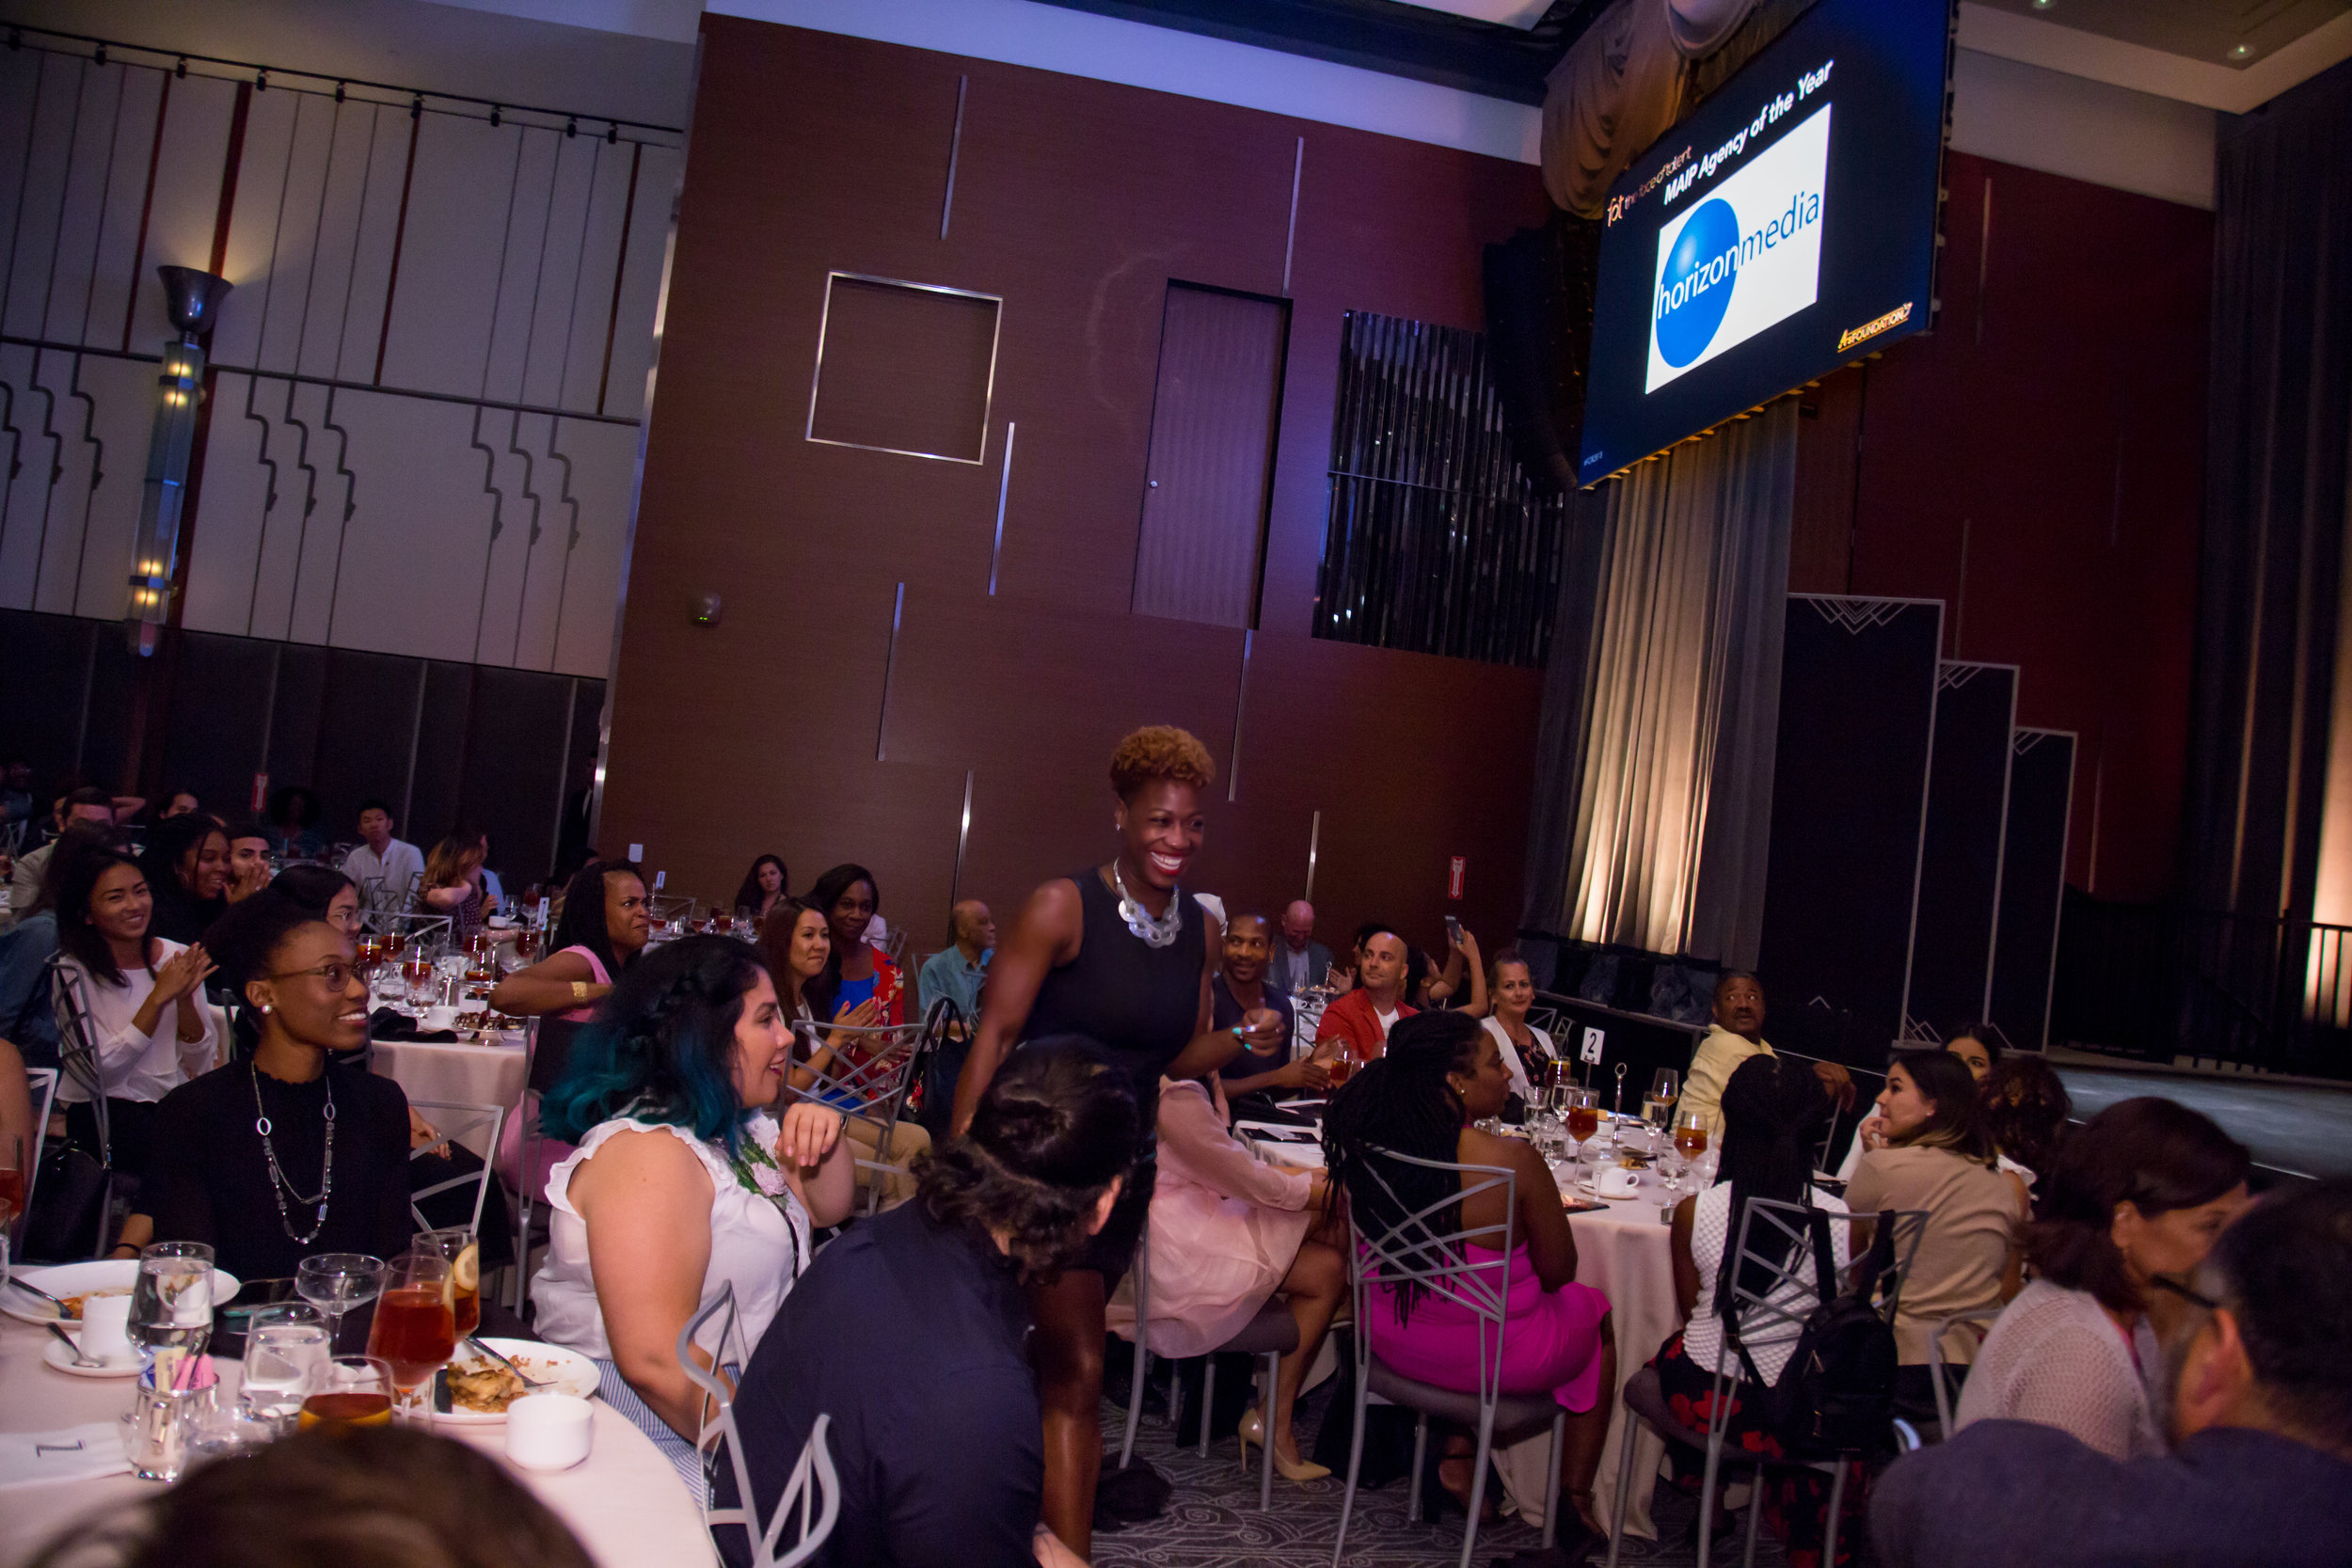 4As_MAIP_FOT_Luncheon_2018_Margarita_Corporan-216.jpg